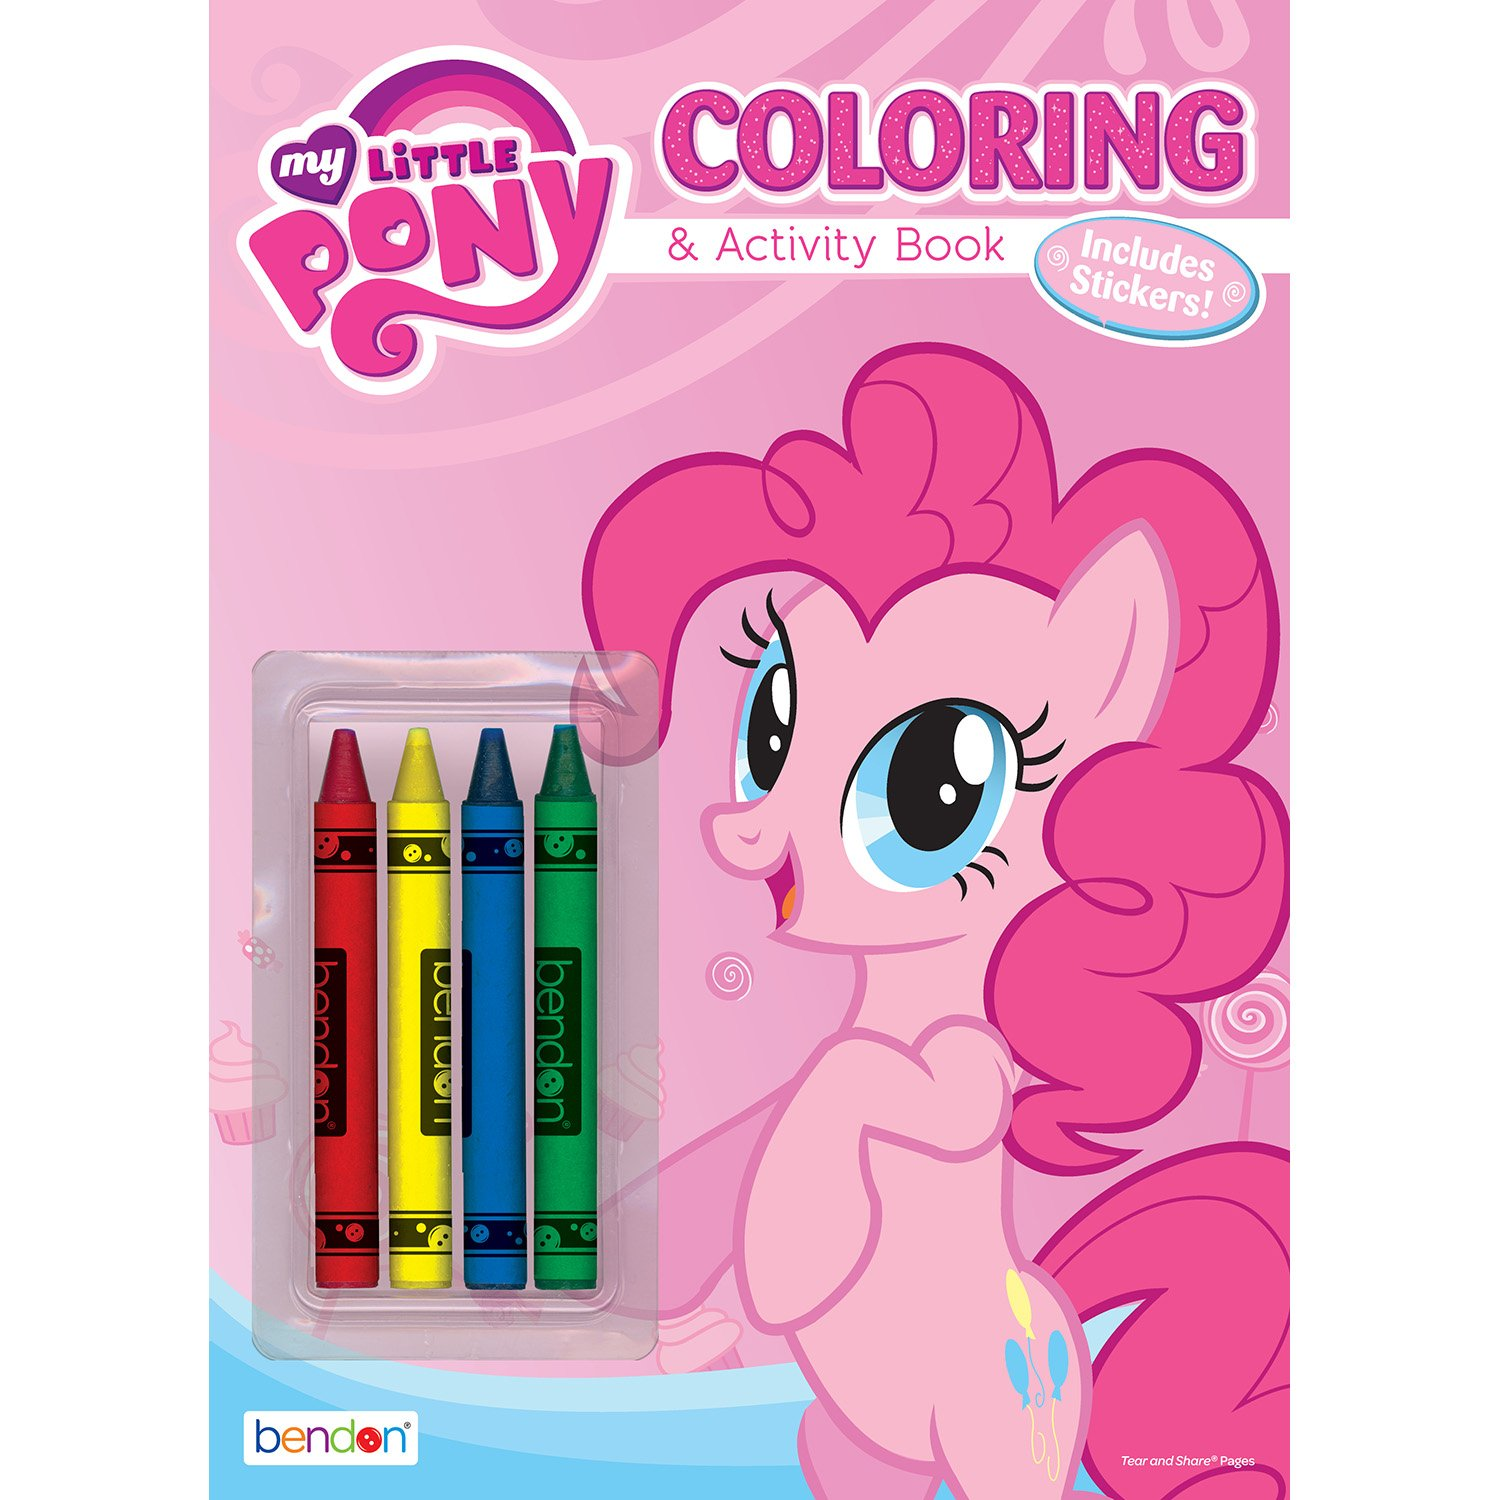 Amazon.com: Bendon My Little Pony 224 Coloring & Activity Book ...